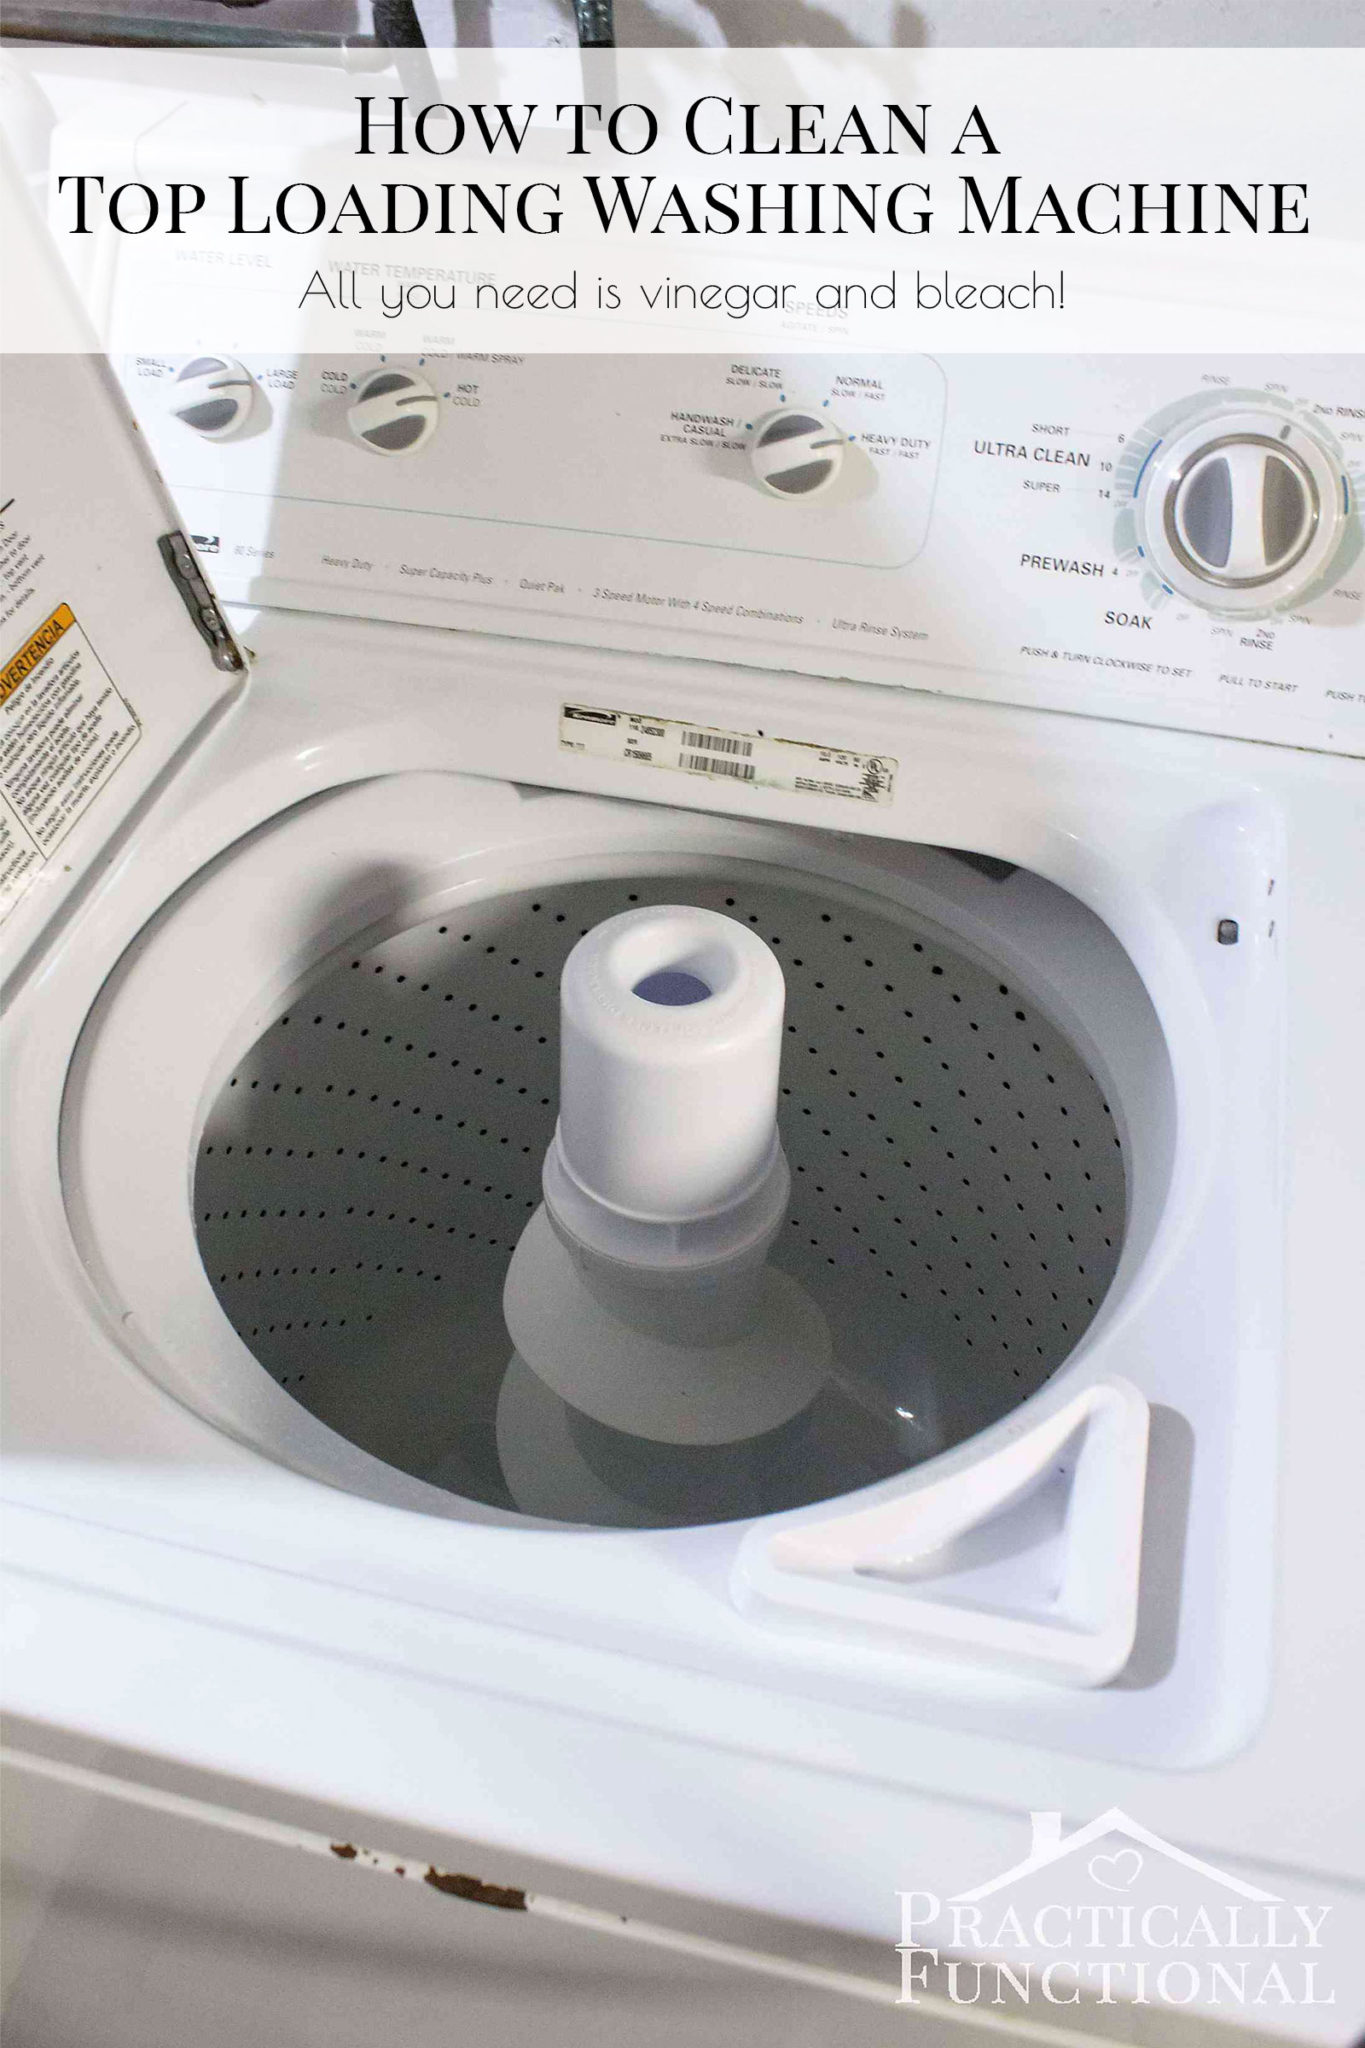 How To Clean A Top Loading Washing Machine With Vinegar And Bleach